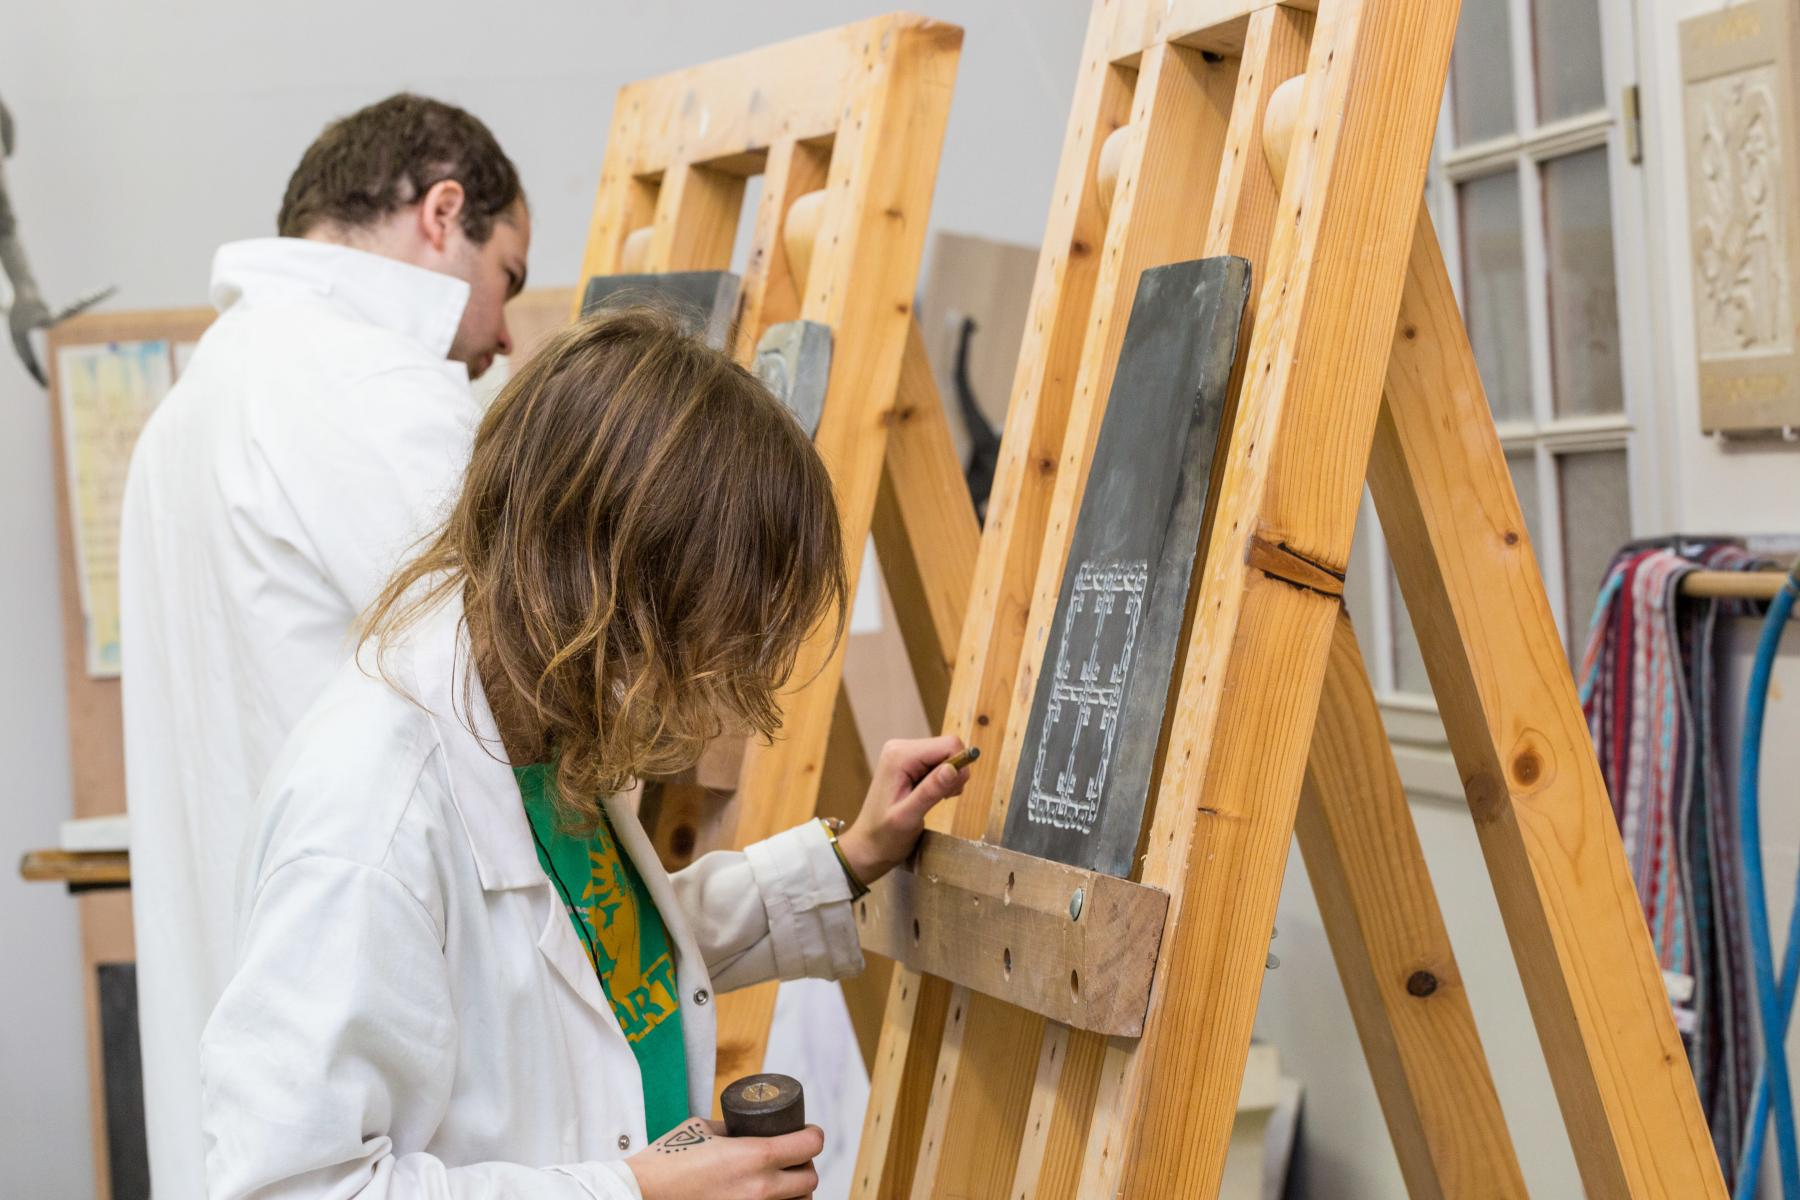 trainees learn stone engraving skills with GIP FCIP l'Académie de Caen